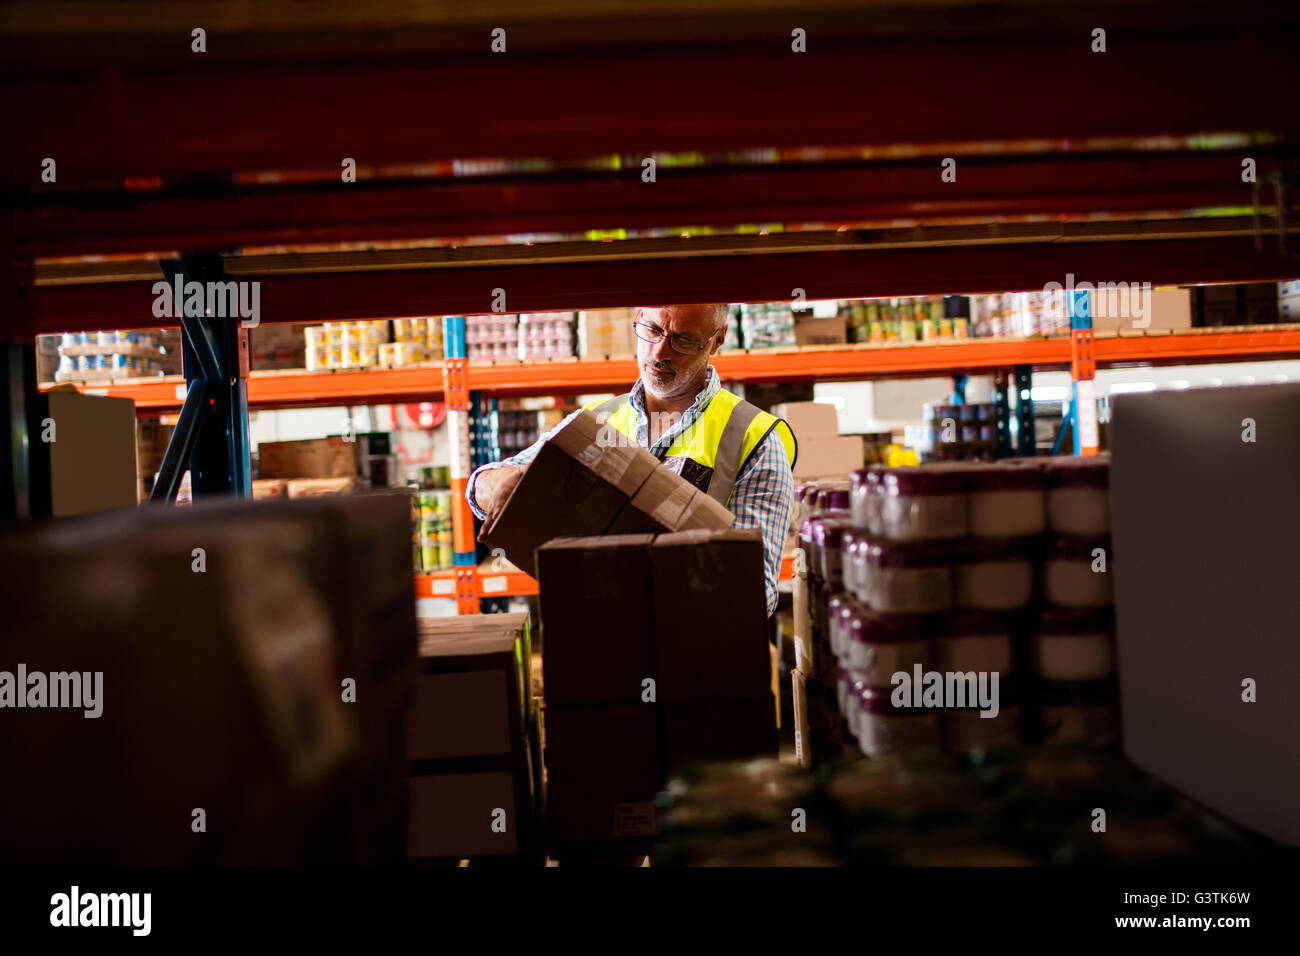 Warehouse worker tidying the shelves - Stock Image